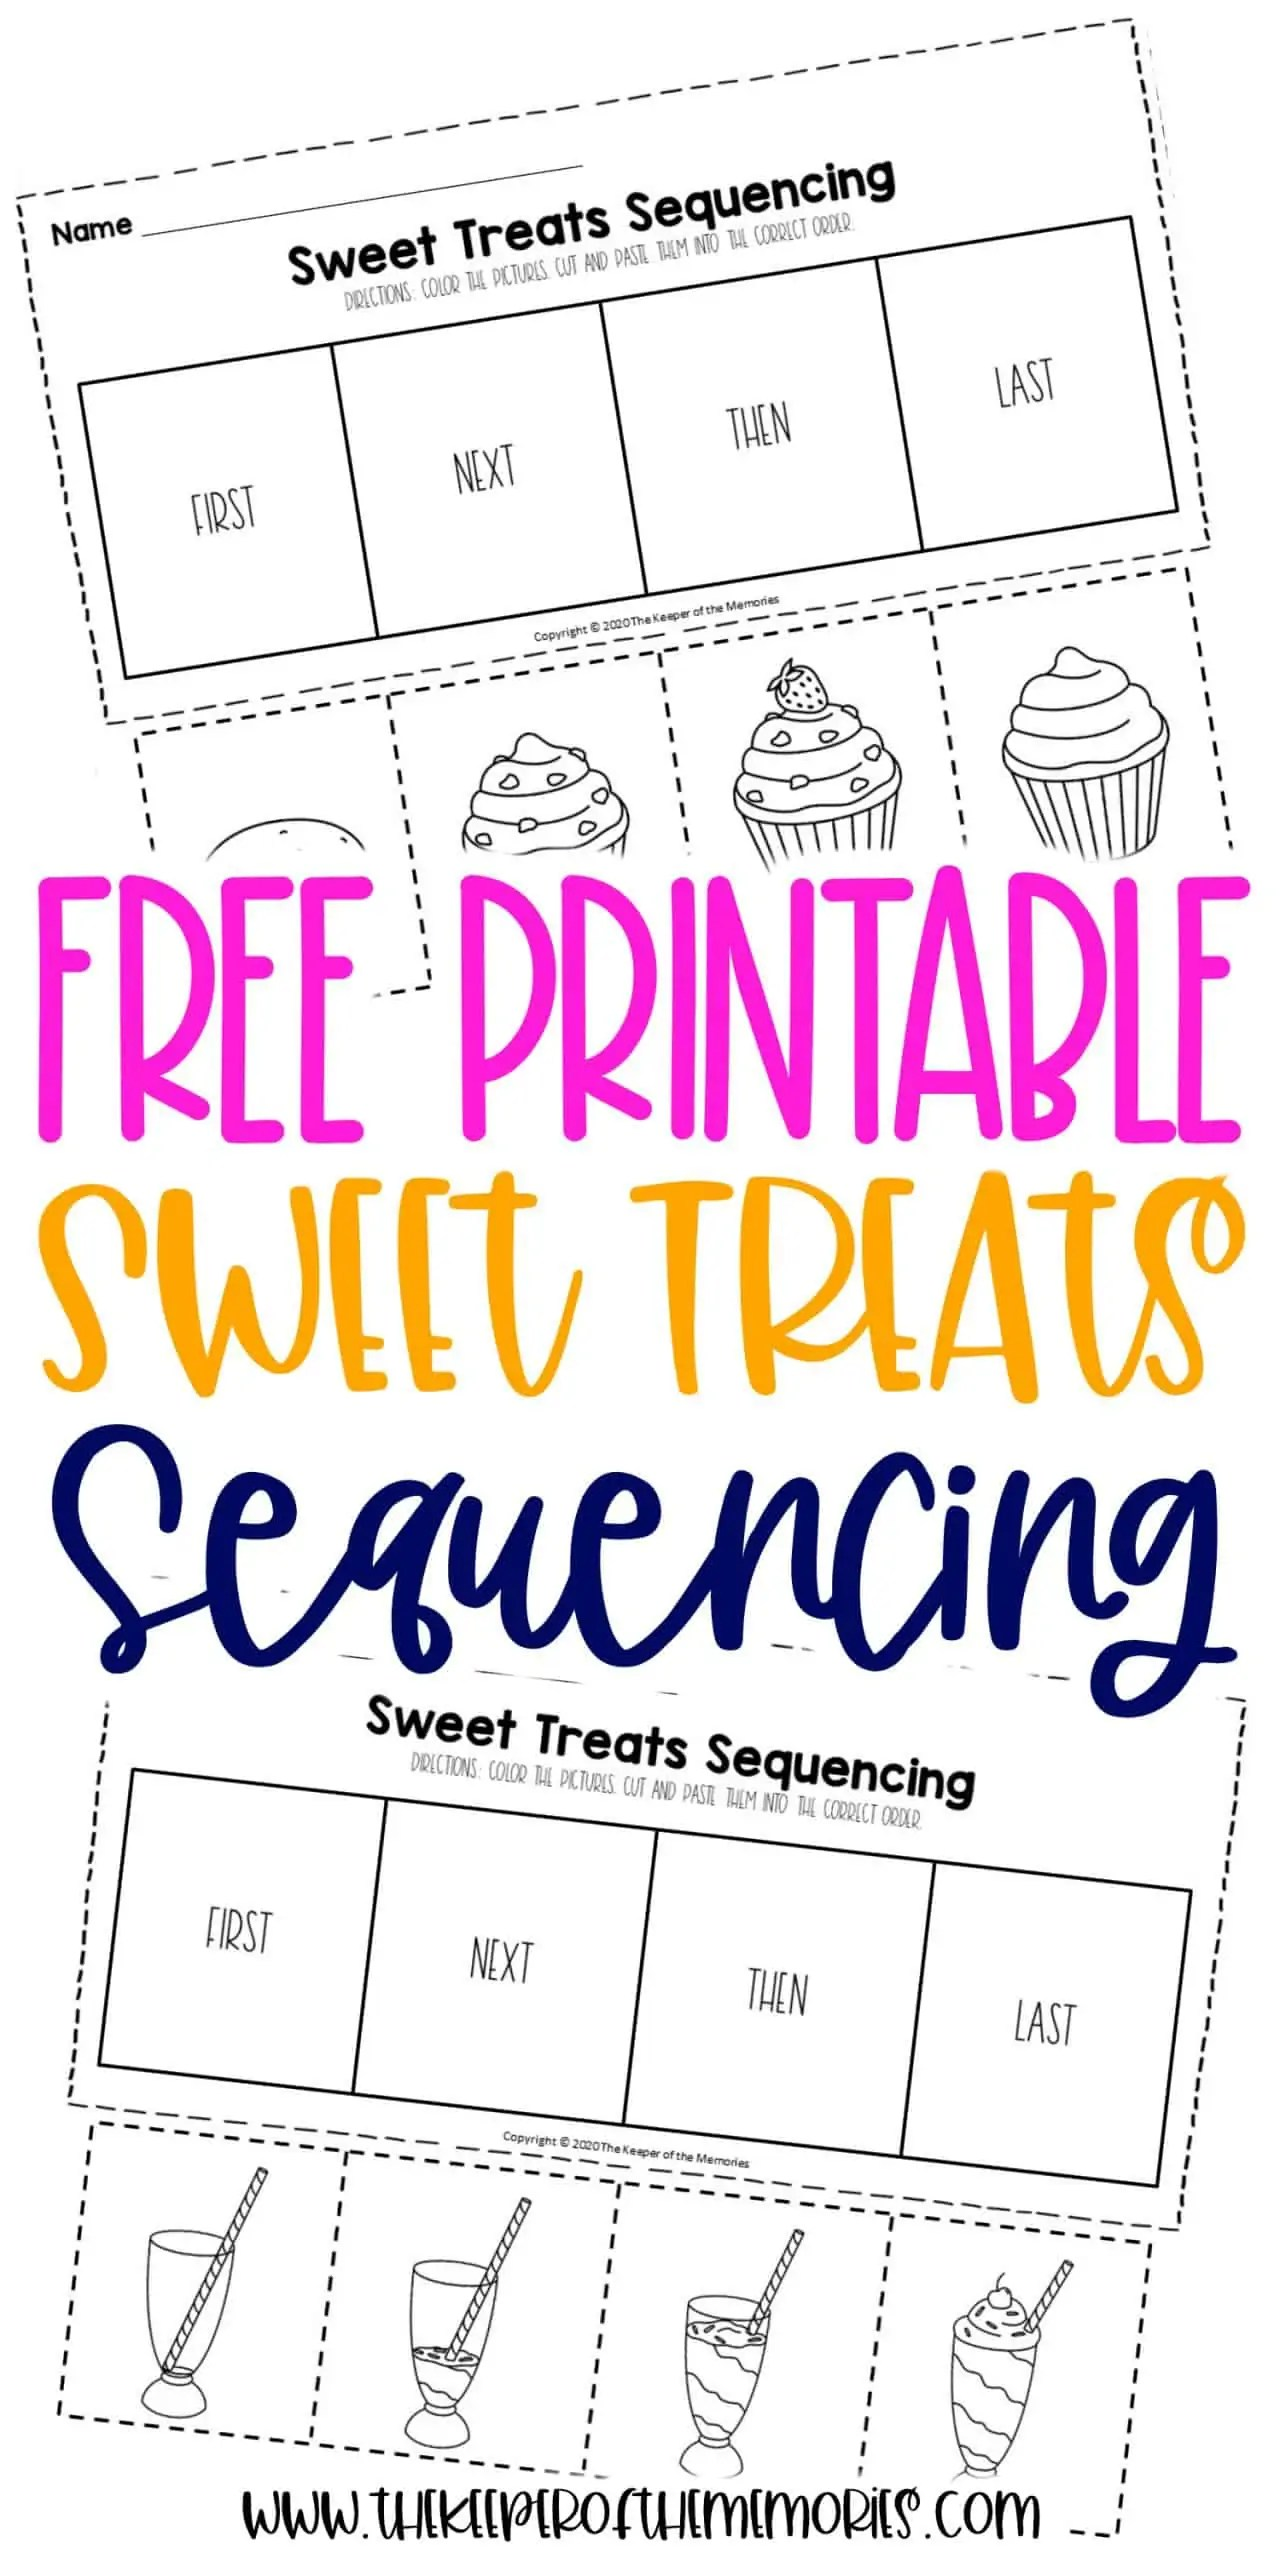 Free Printable Sweet Treats Sequencing Worksheets For